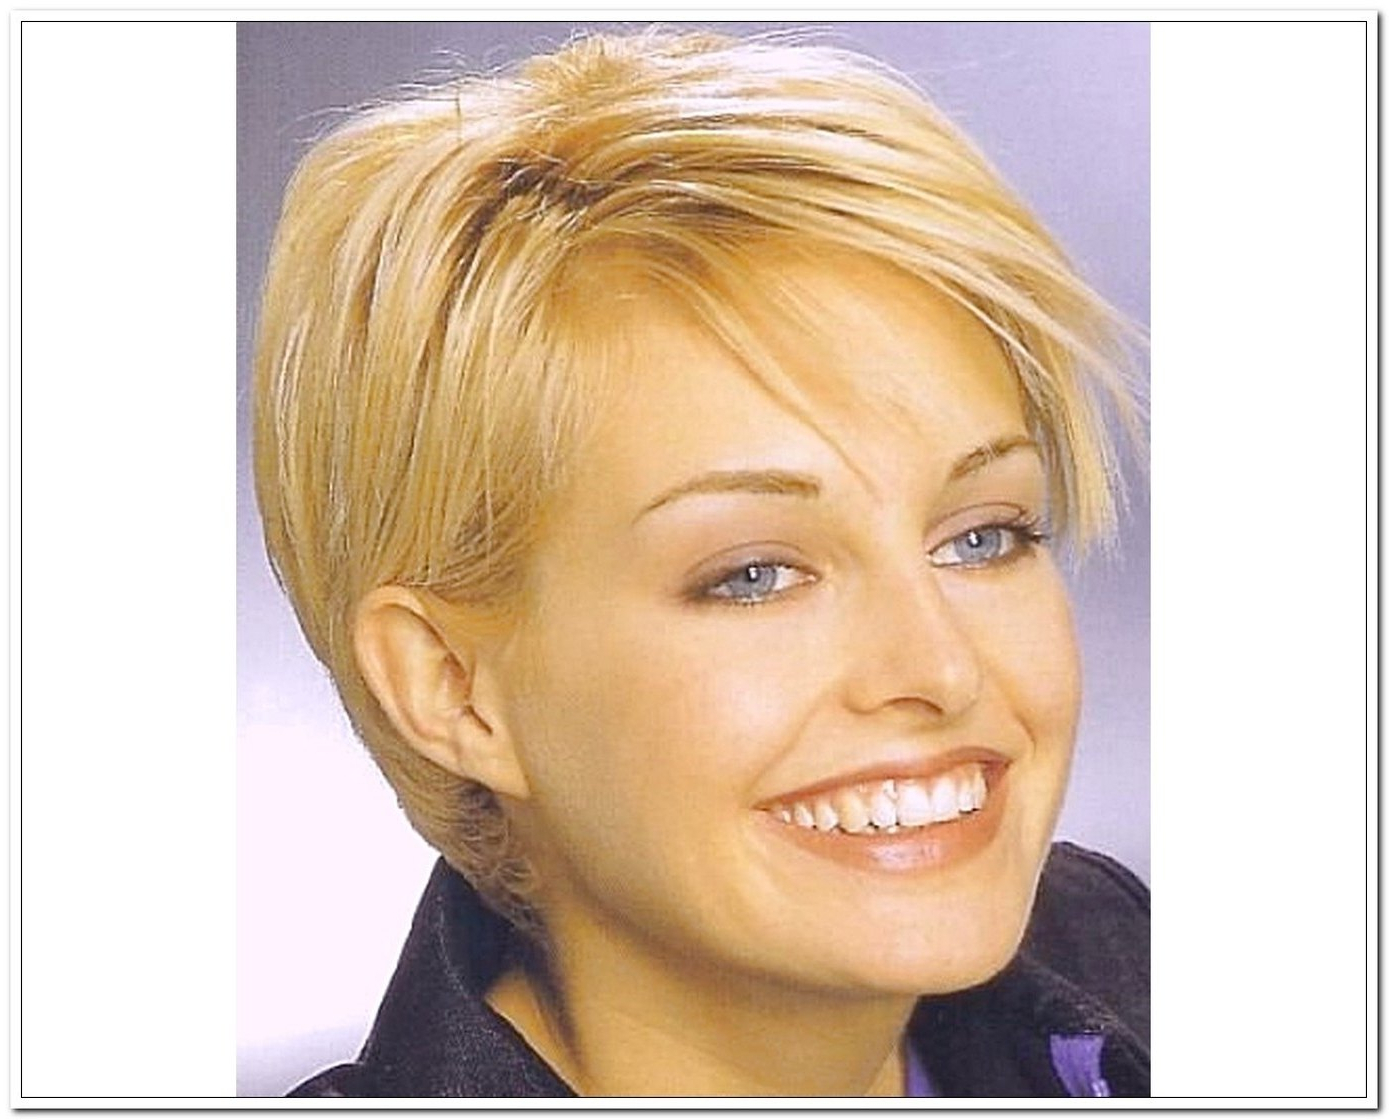 New Short Haircuts For Fat Faces And Double Chins within Short Hairstyles For Fat Faces And Double Chins